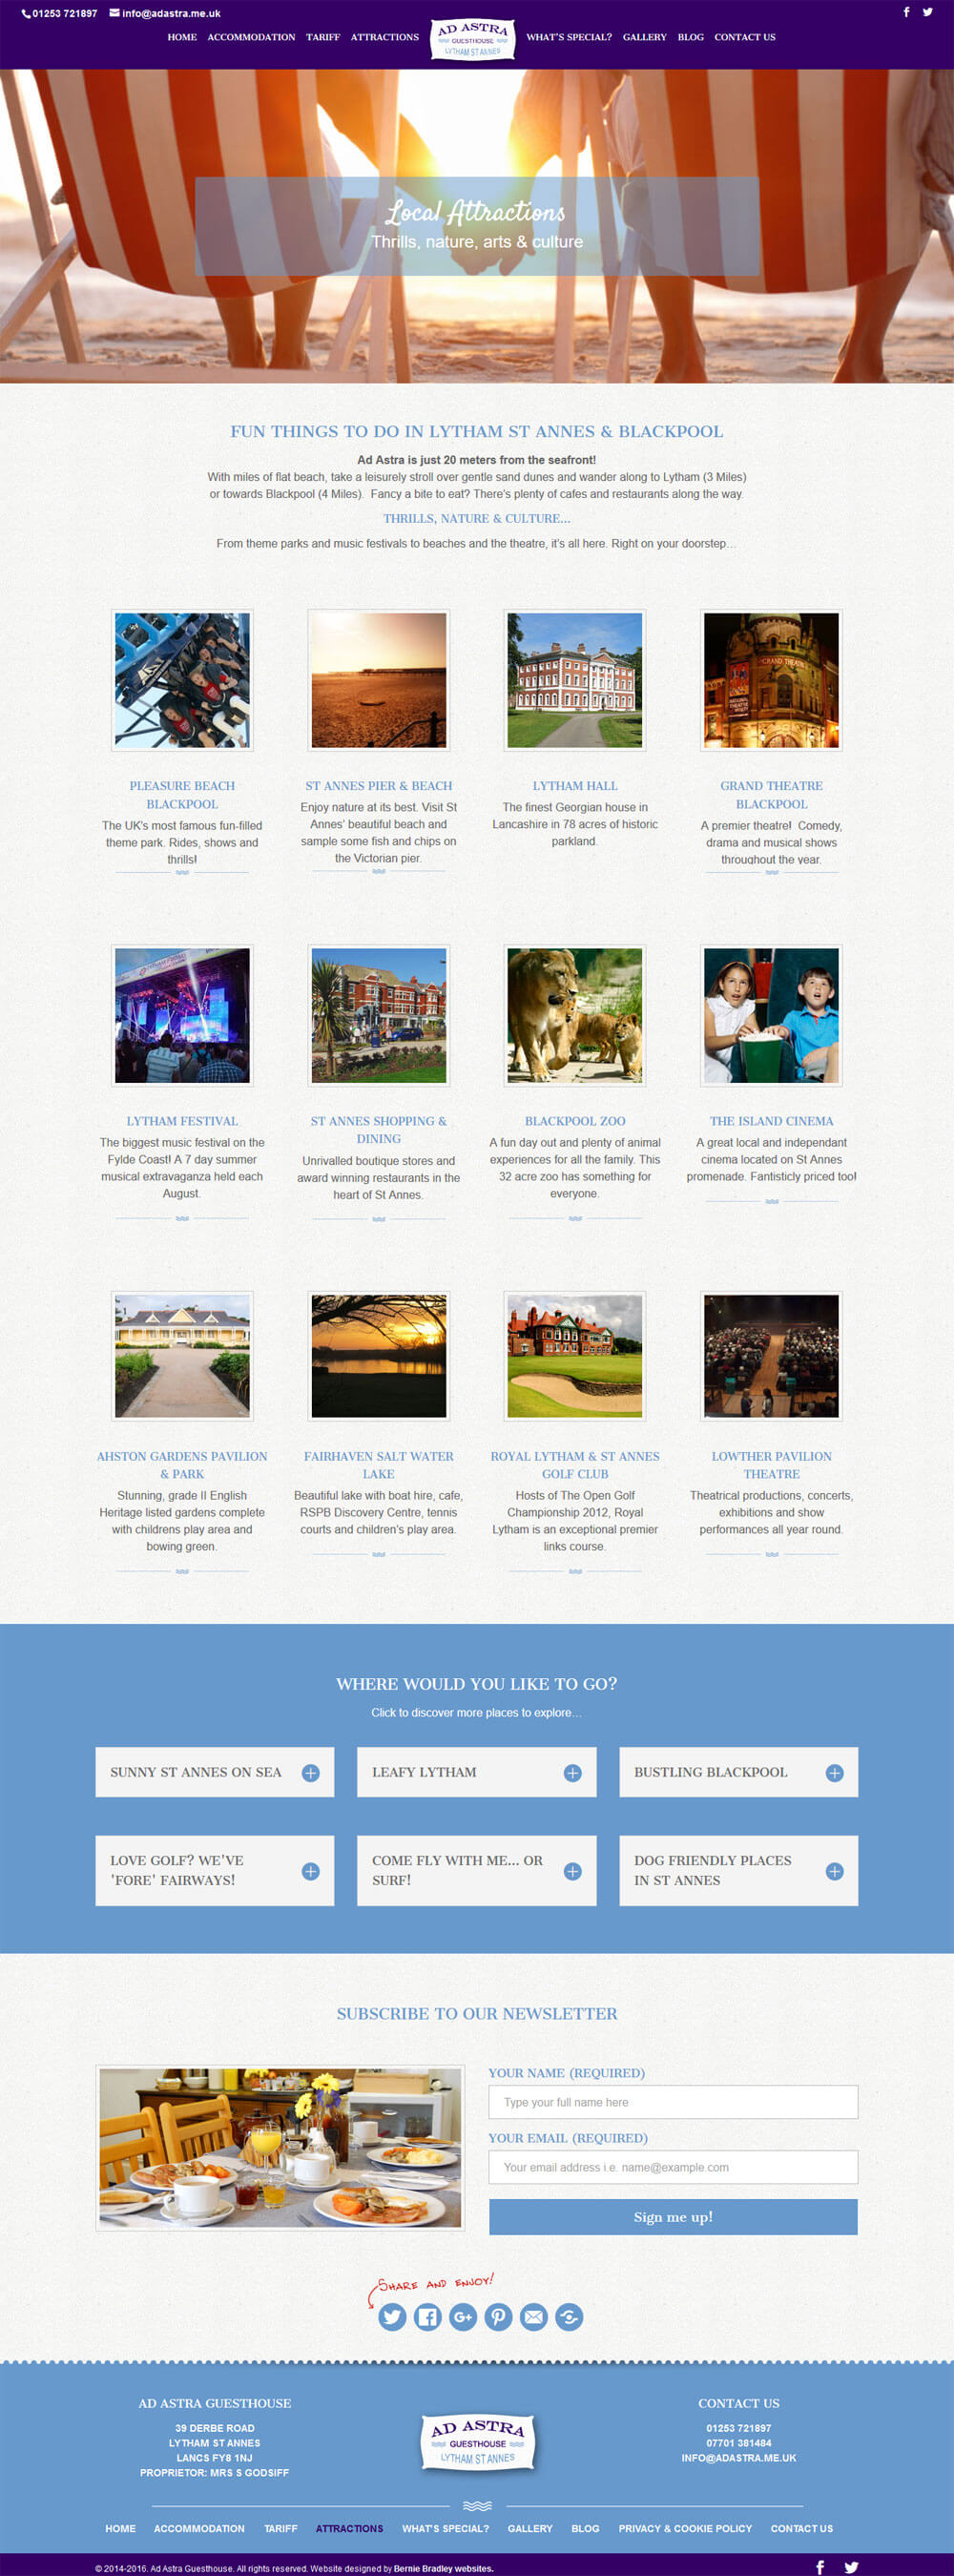 Attractions page beautifully displaying images and links to local places of interest